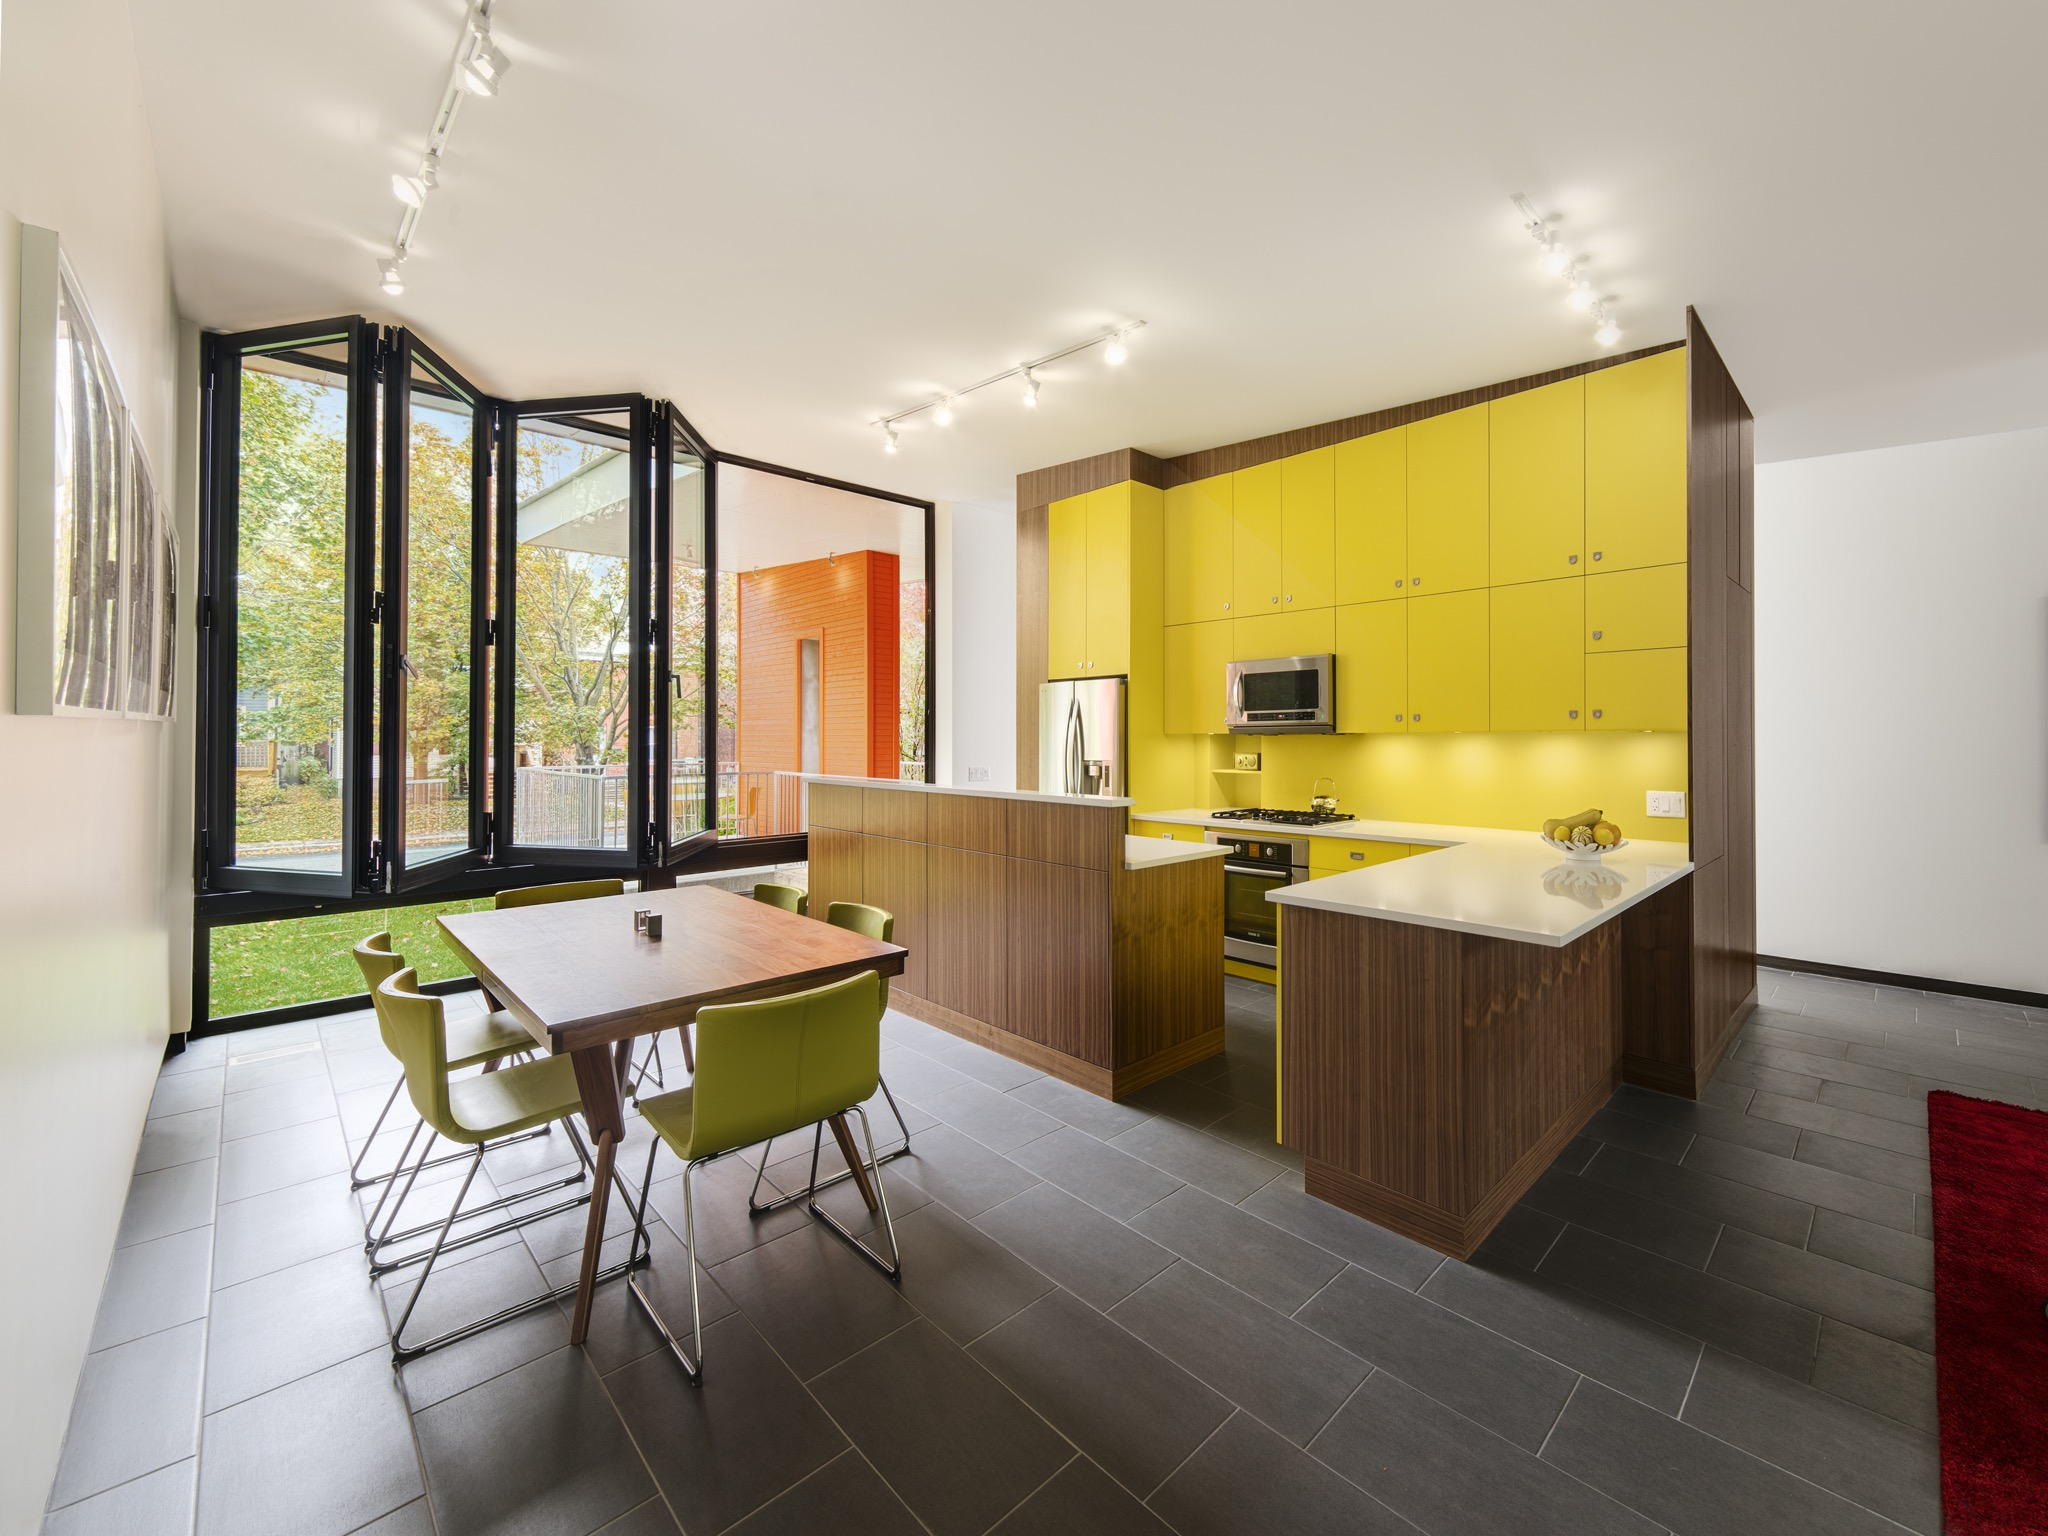 Modern Kitchen With Yellow Lacquered Cabinets (Image 12 of 18)